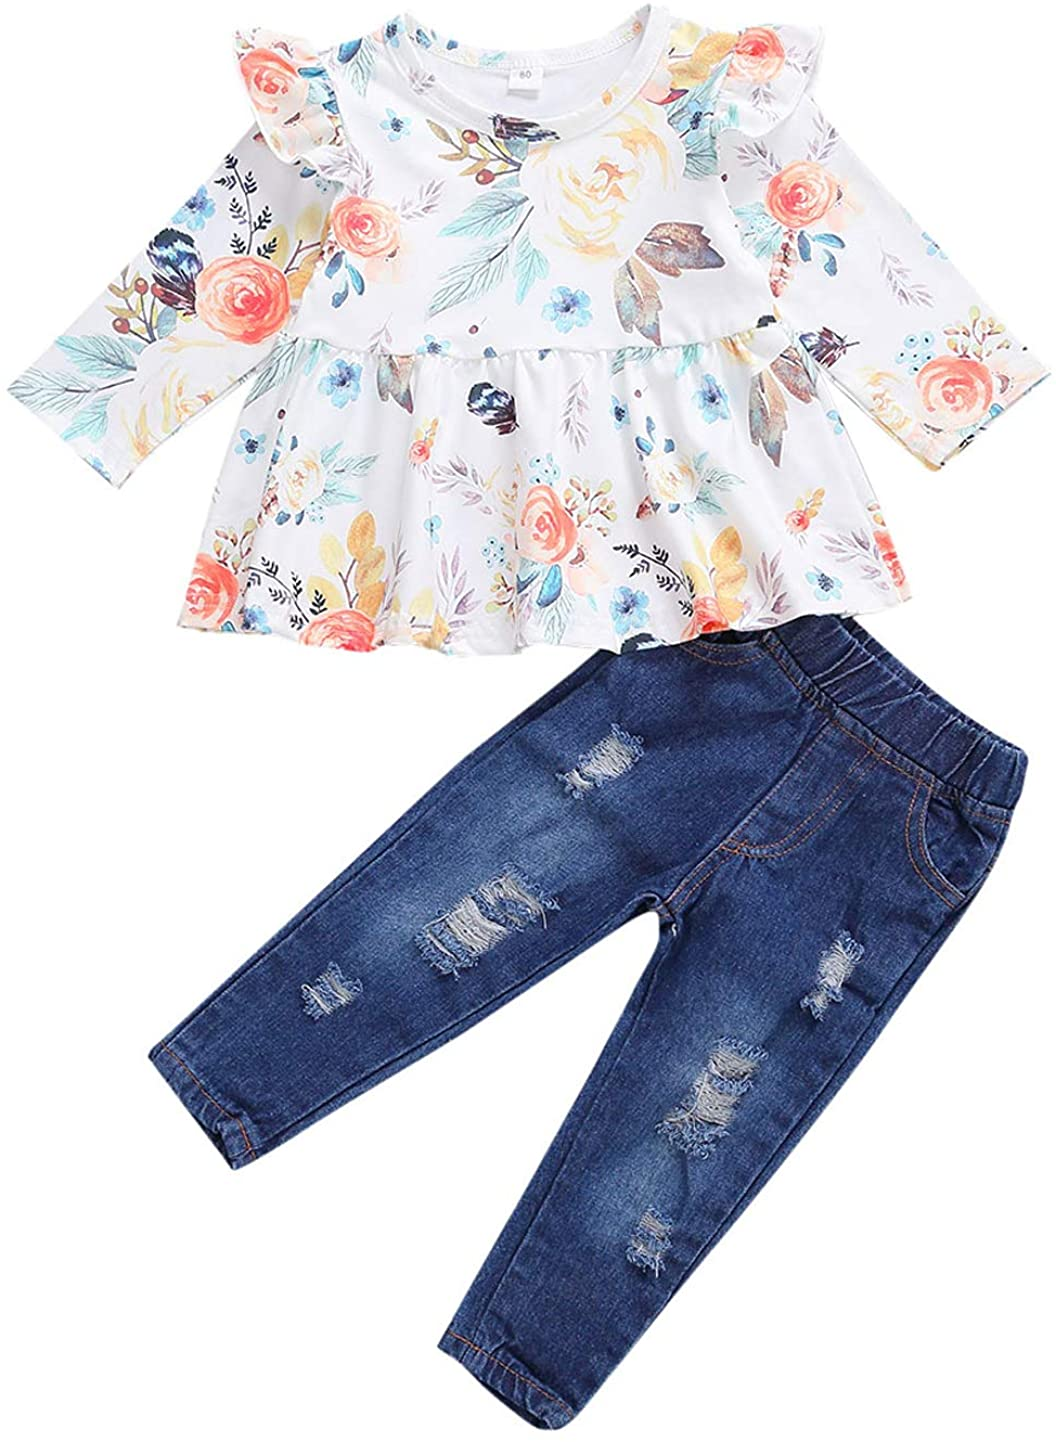 Toddler Girls Sleeveless Lace Ruffle Shirt Pleated Tube Crop Top Blouse Bell Bottom Denim Jeans Flare Legging Pants Outfits